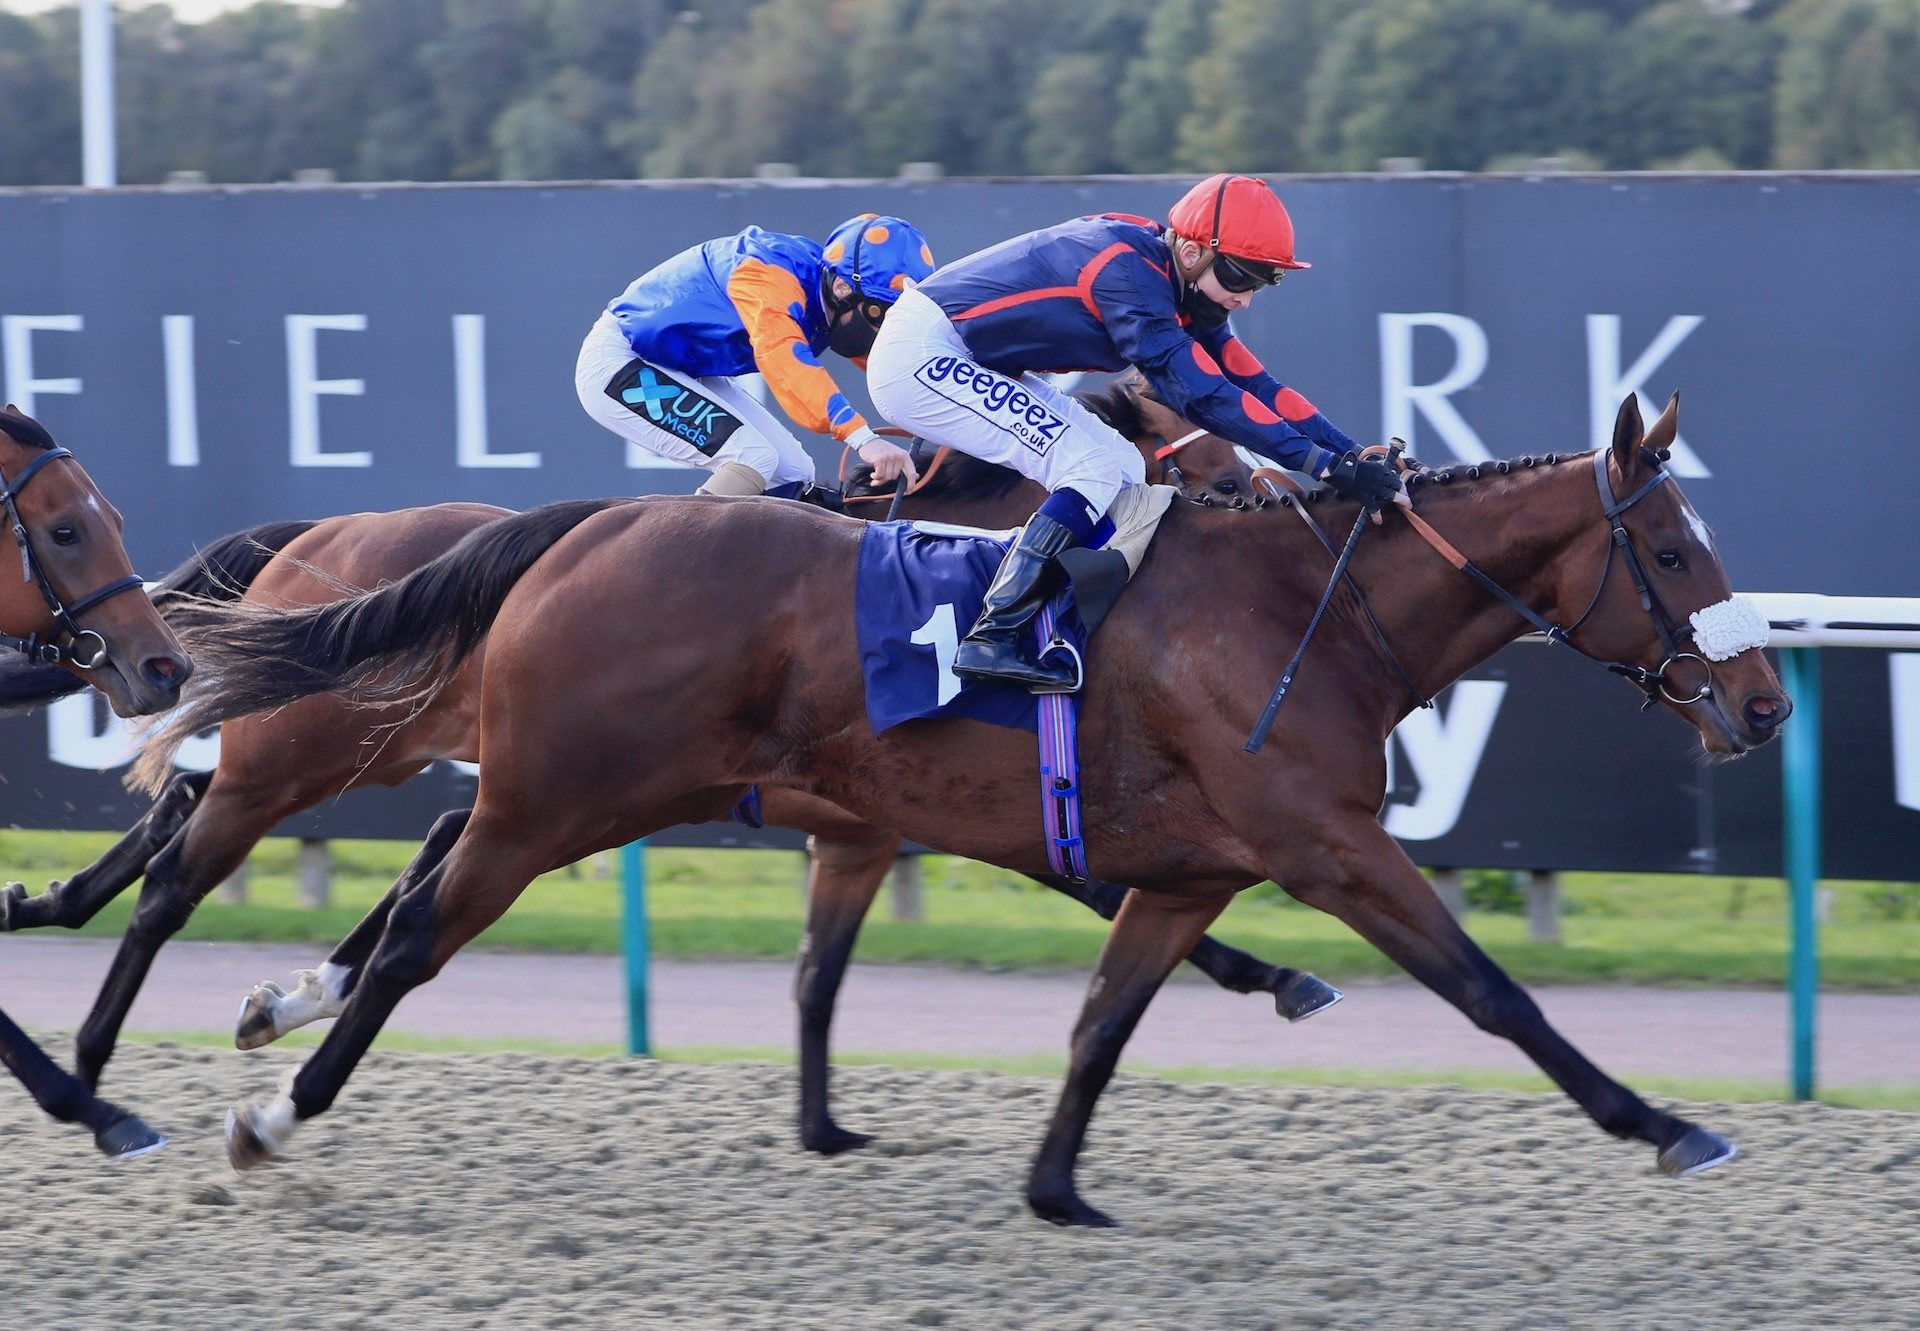 Dejame Paso (The Gurkha) Wins At Lingfield